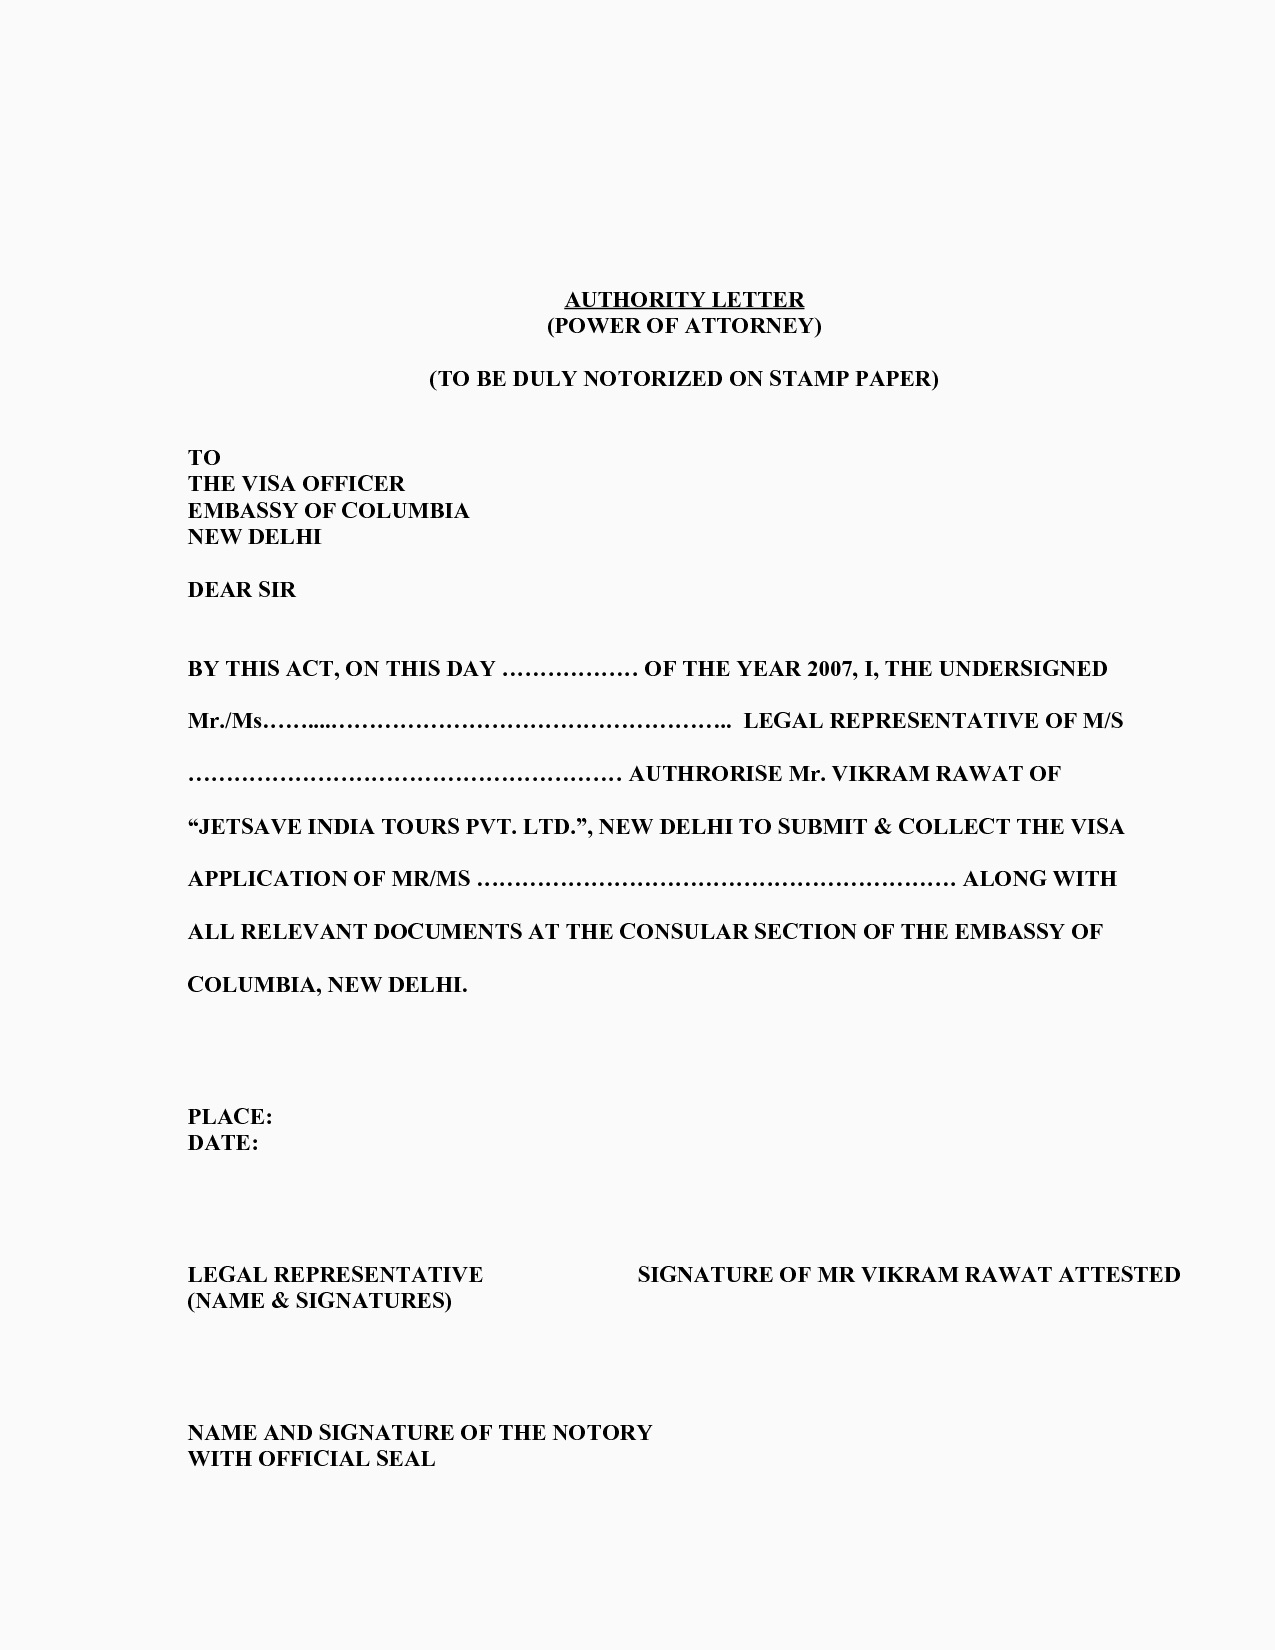 power of attorney resignation letter template example-sample poa letters power of attorney resignation 9-r